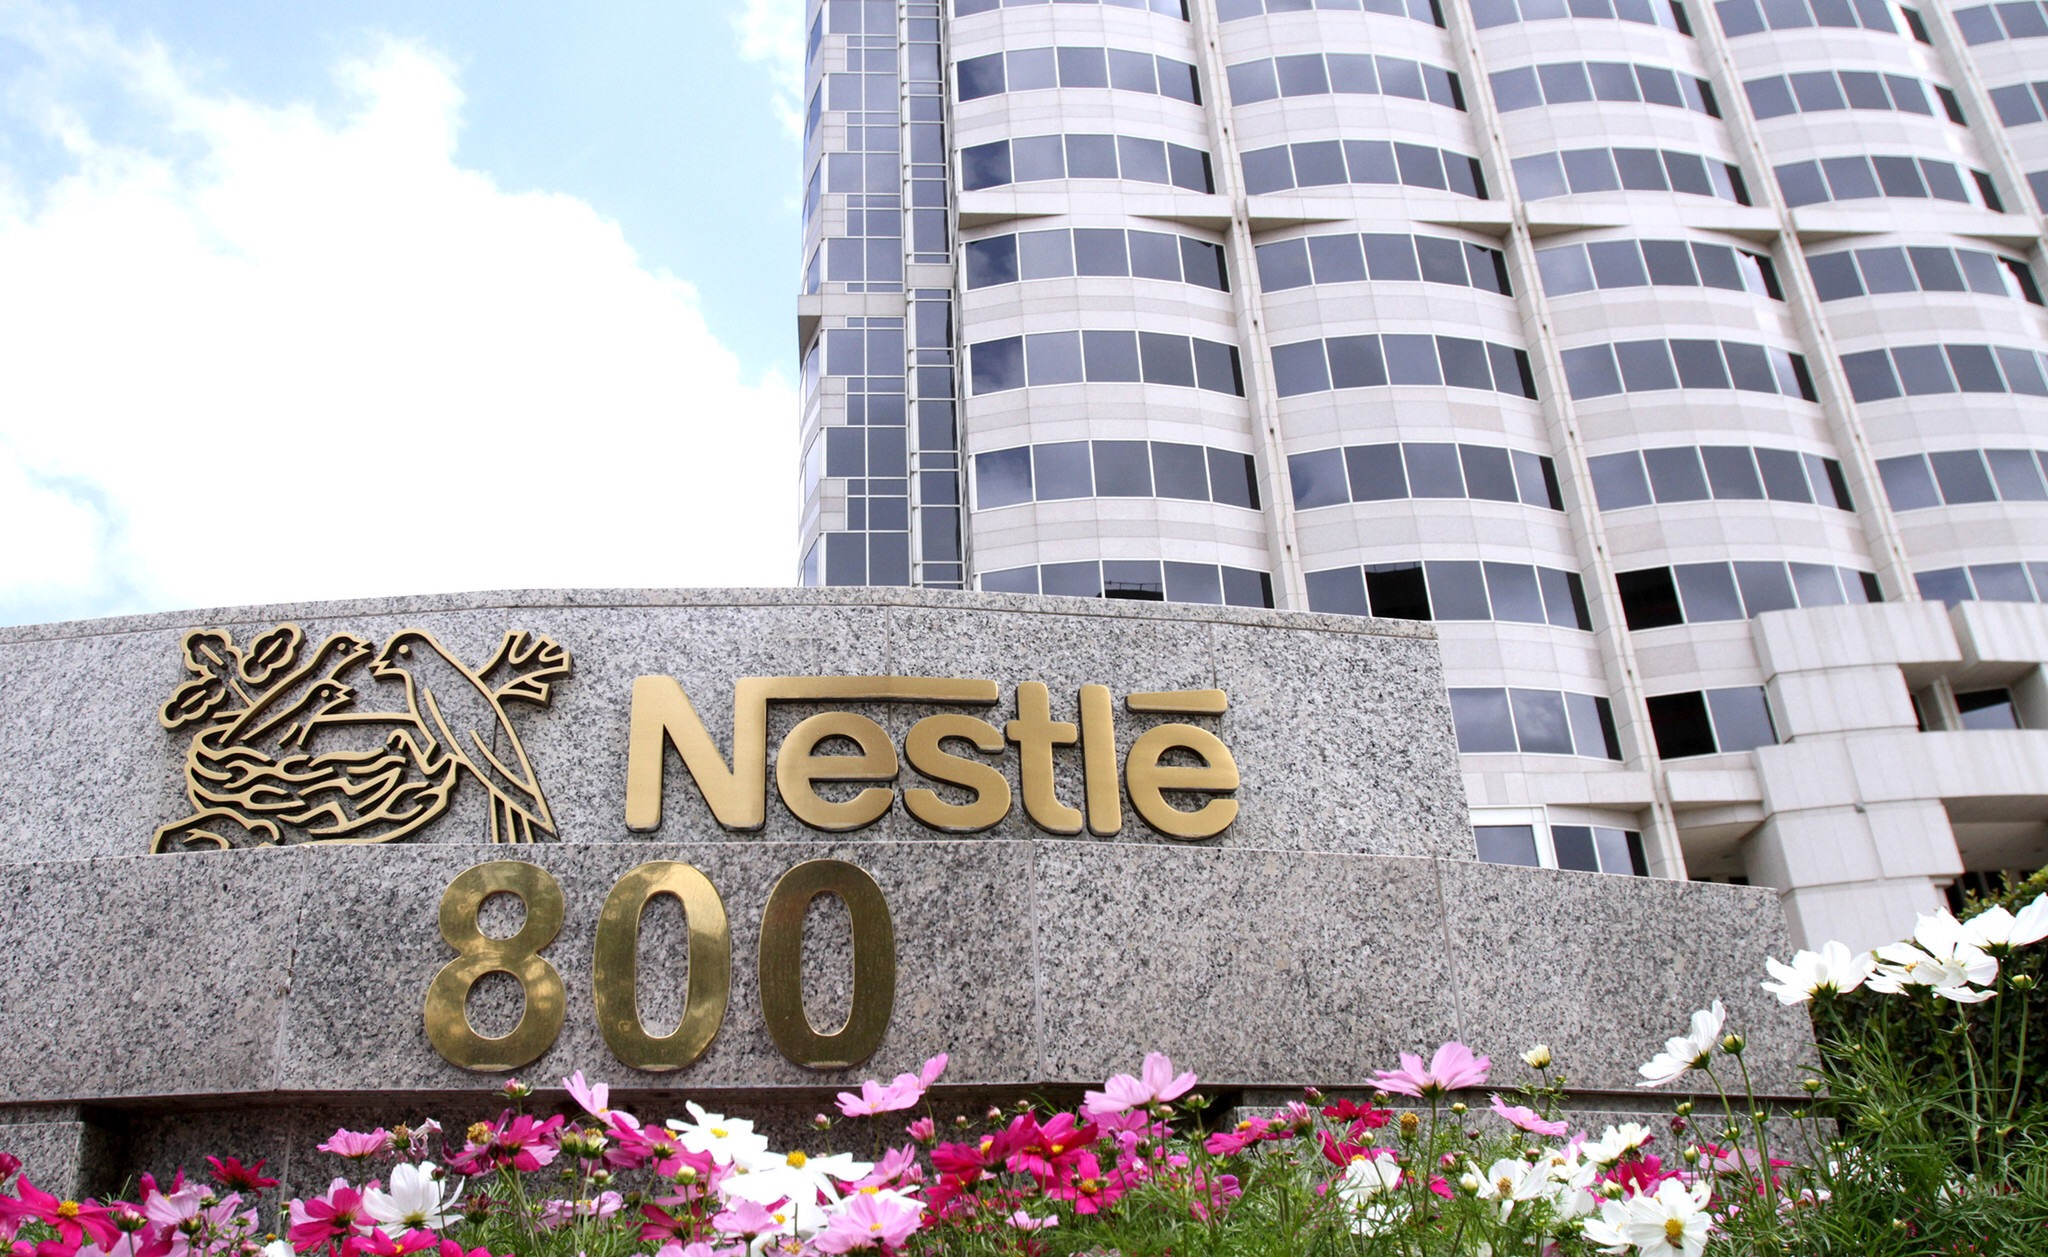 Nestlé corporate office is leaving Glendale corporate relocation Glendale real estate agent Glendale realtor Glendale homes for sale Glendale luxury real estate who is the best real estate agent in Glendale